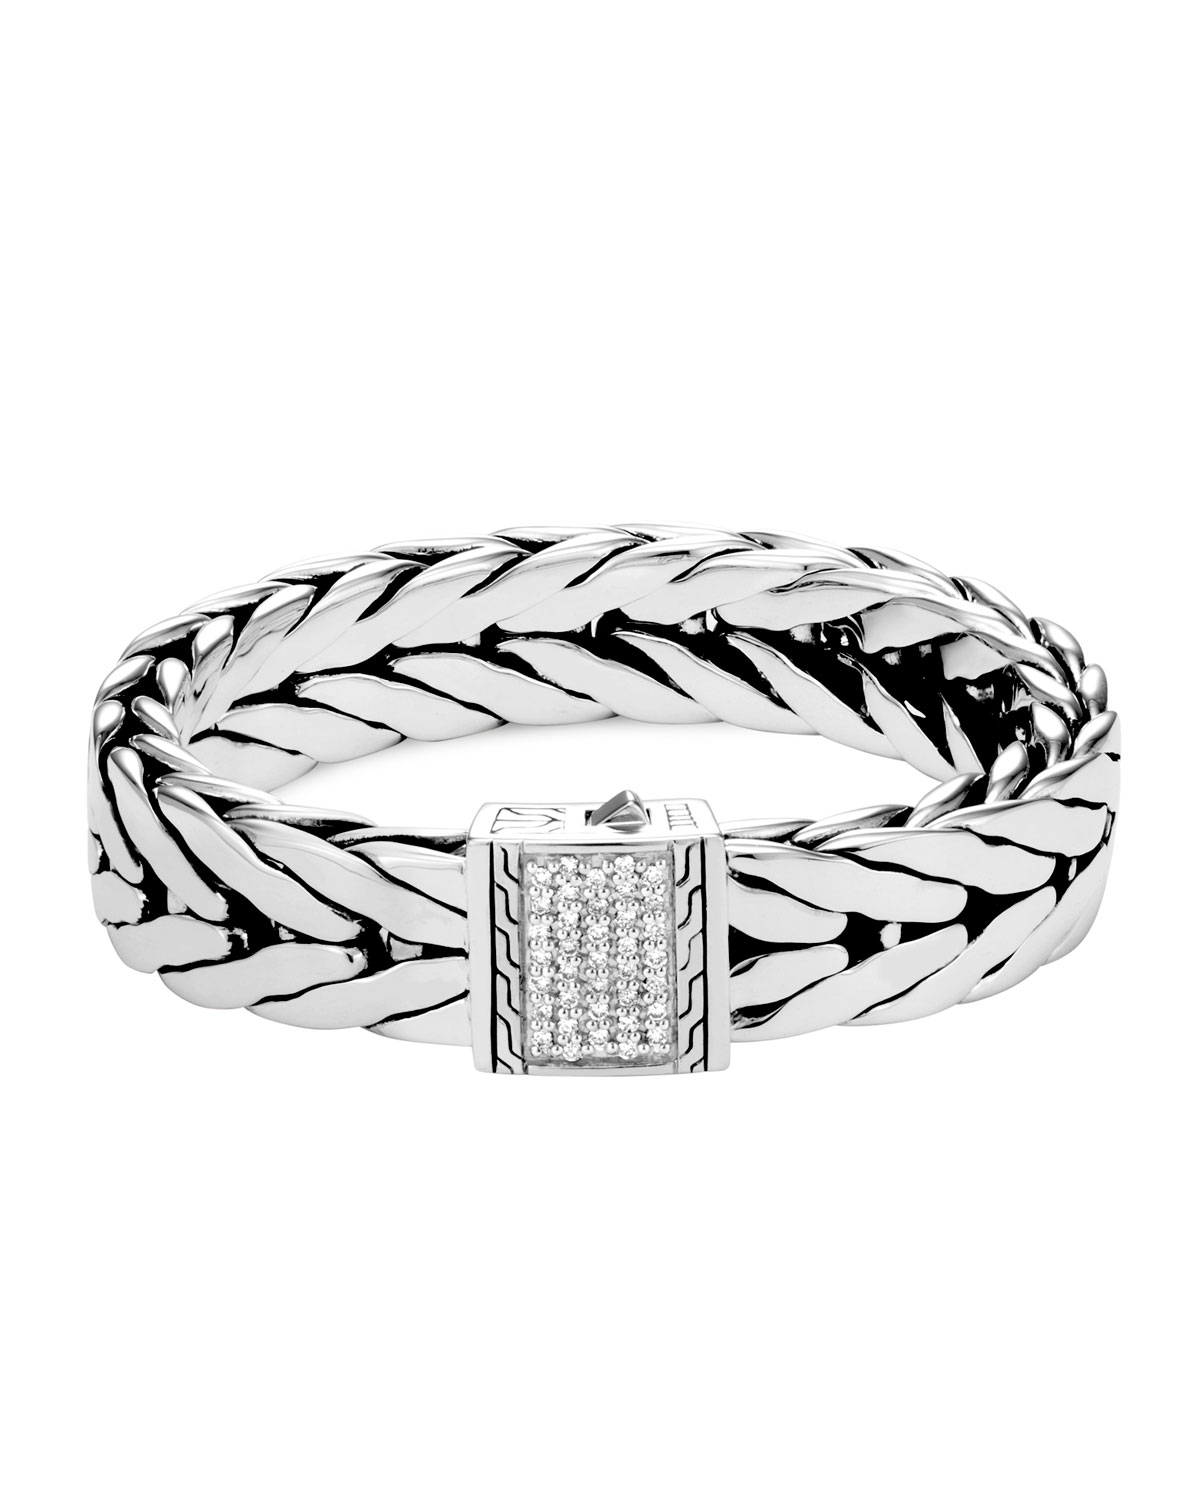 marks silver mar hat bangles zoom large bracelet mallary indonesian in bangle product sterling